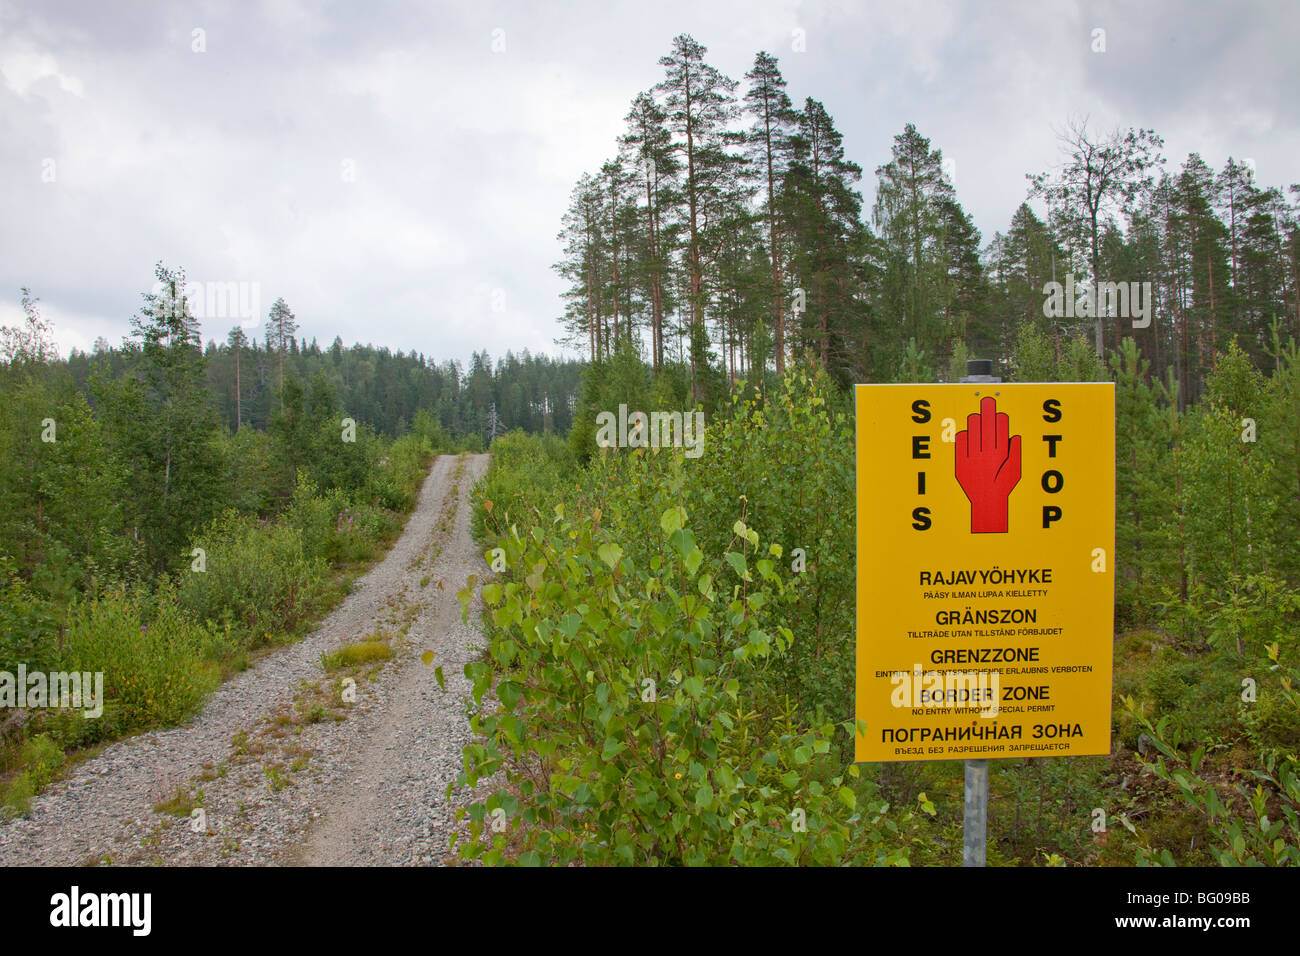 Boundary sign between the borders of Finland and Russia in Karelia. - Stock Image